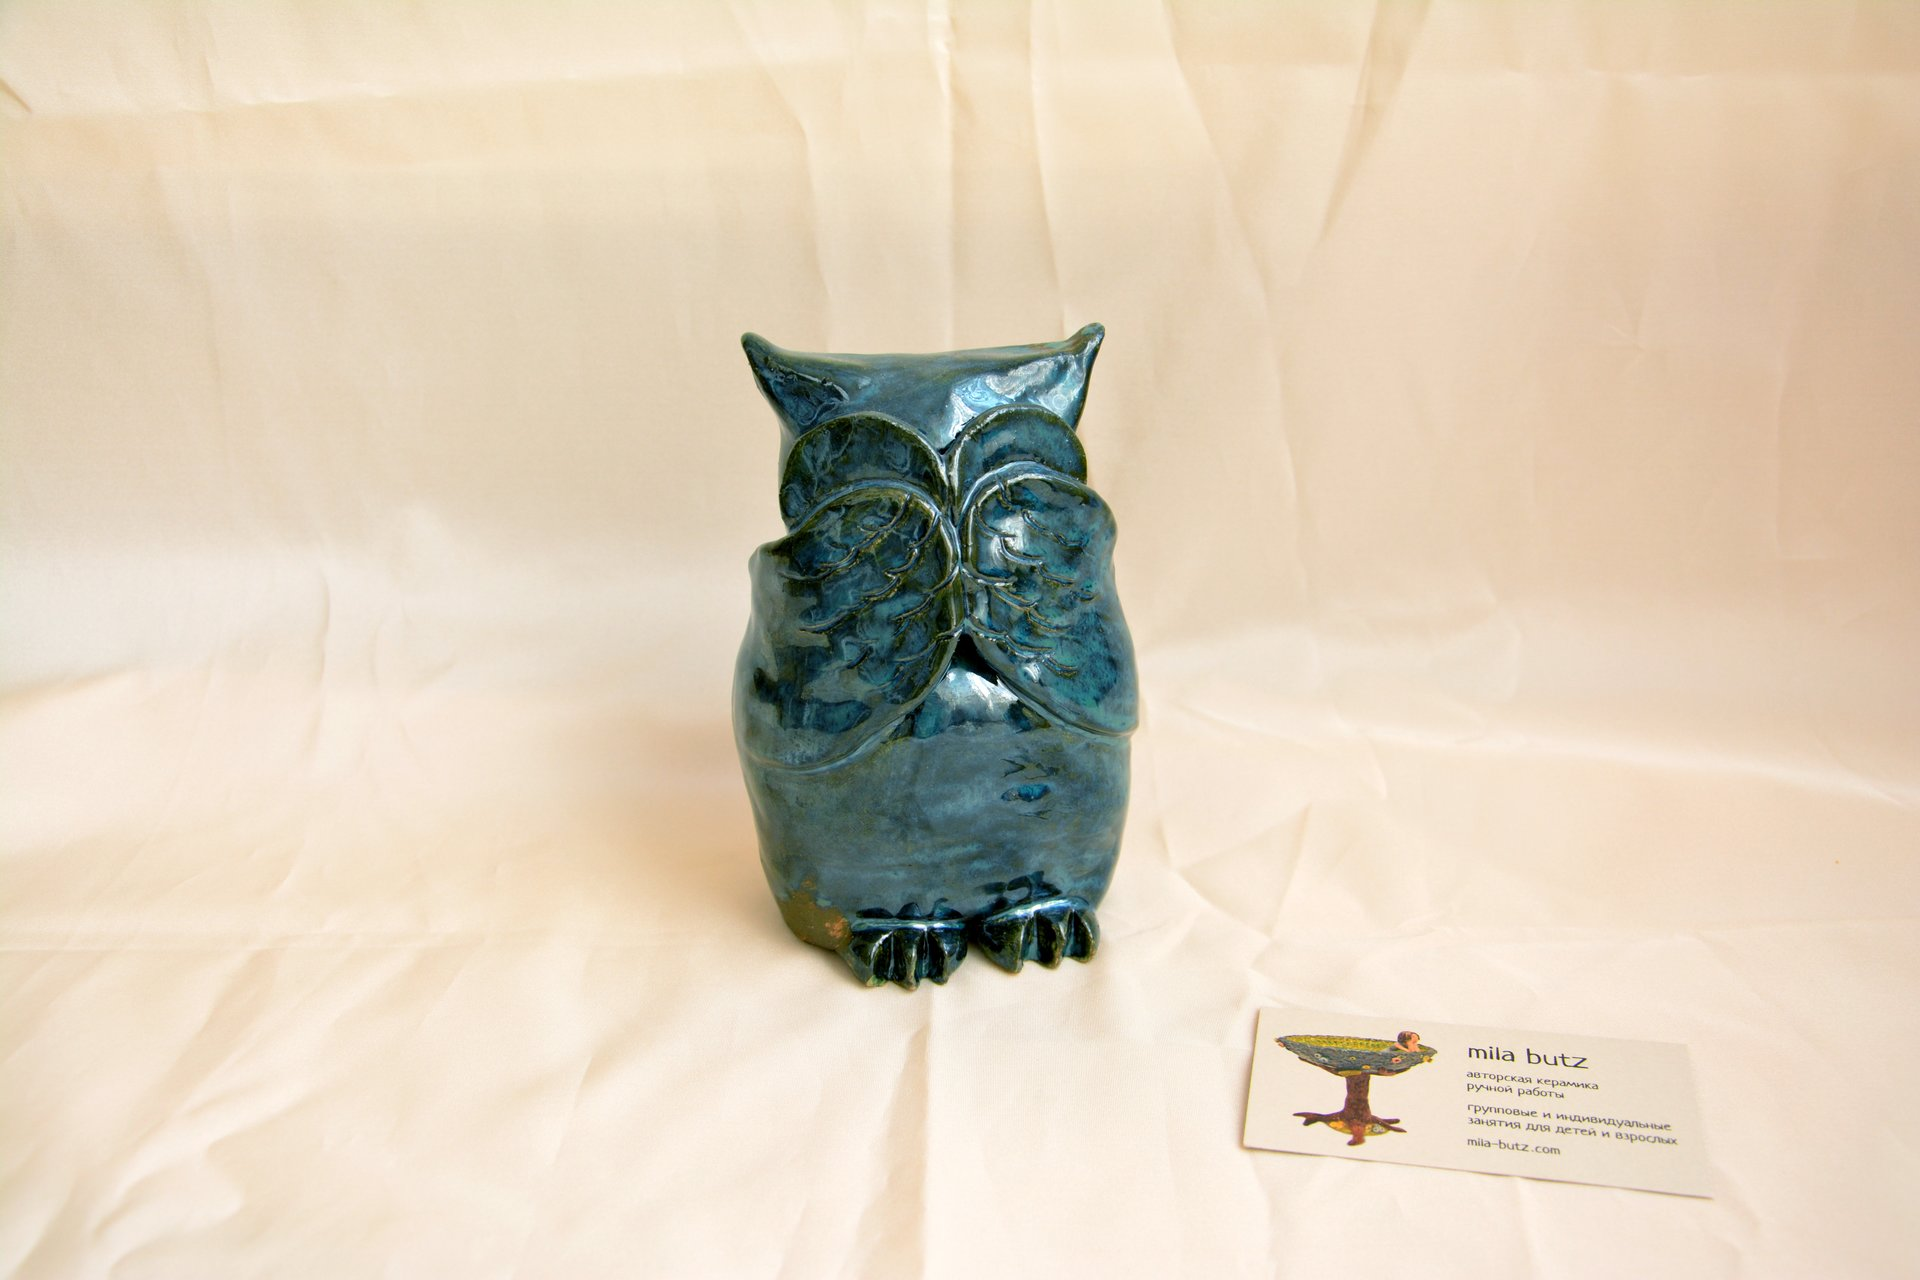 Owl «I see nothing» - Animals and birds, height - 14 cm, photo 2 of 3.